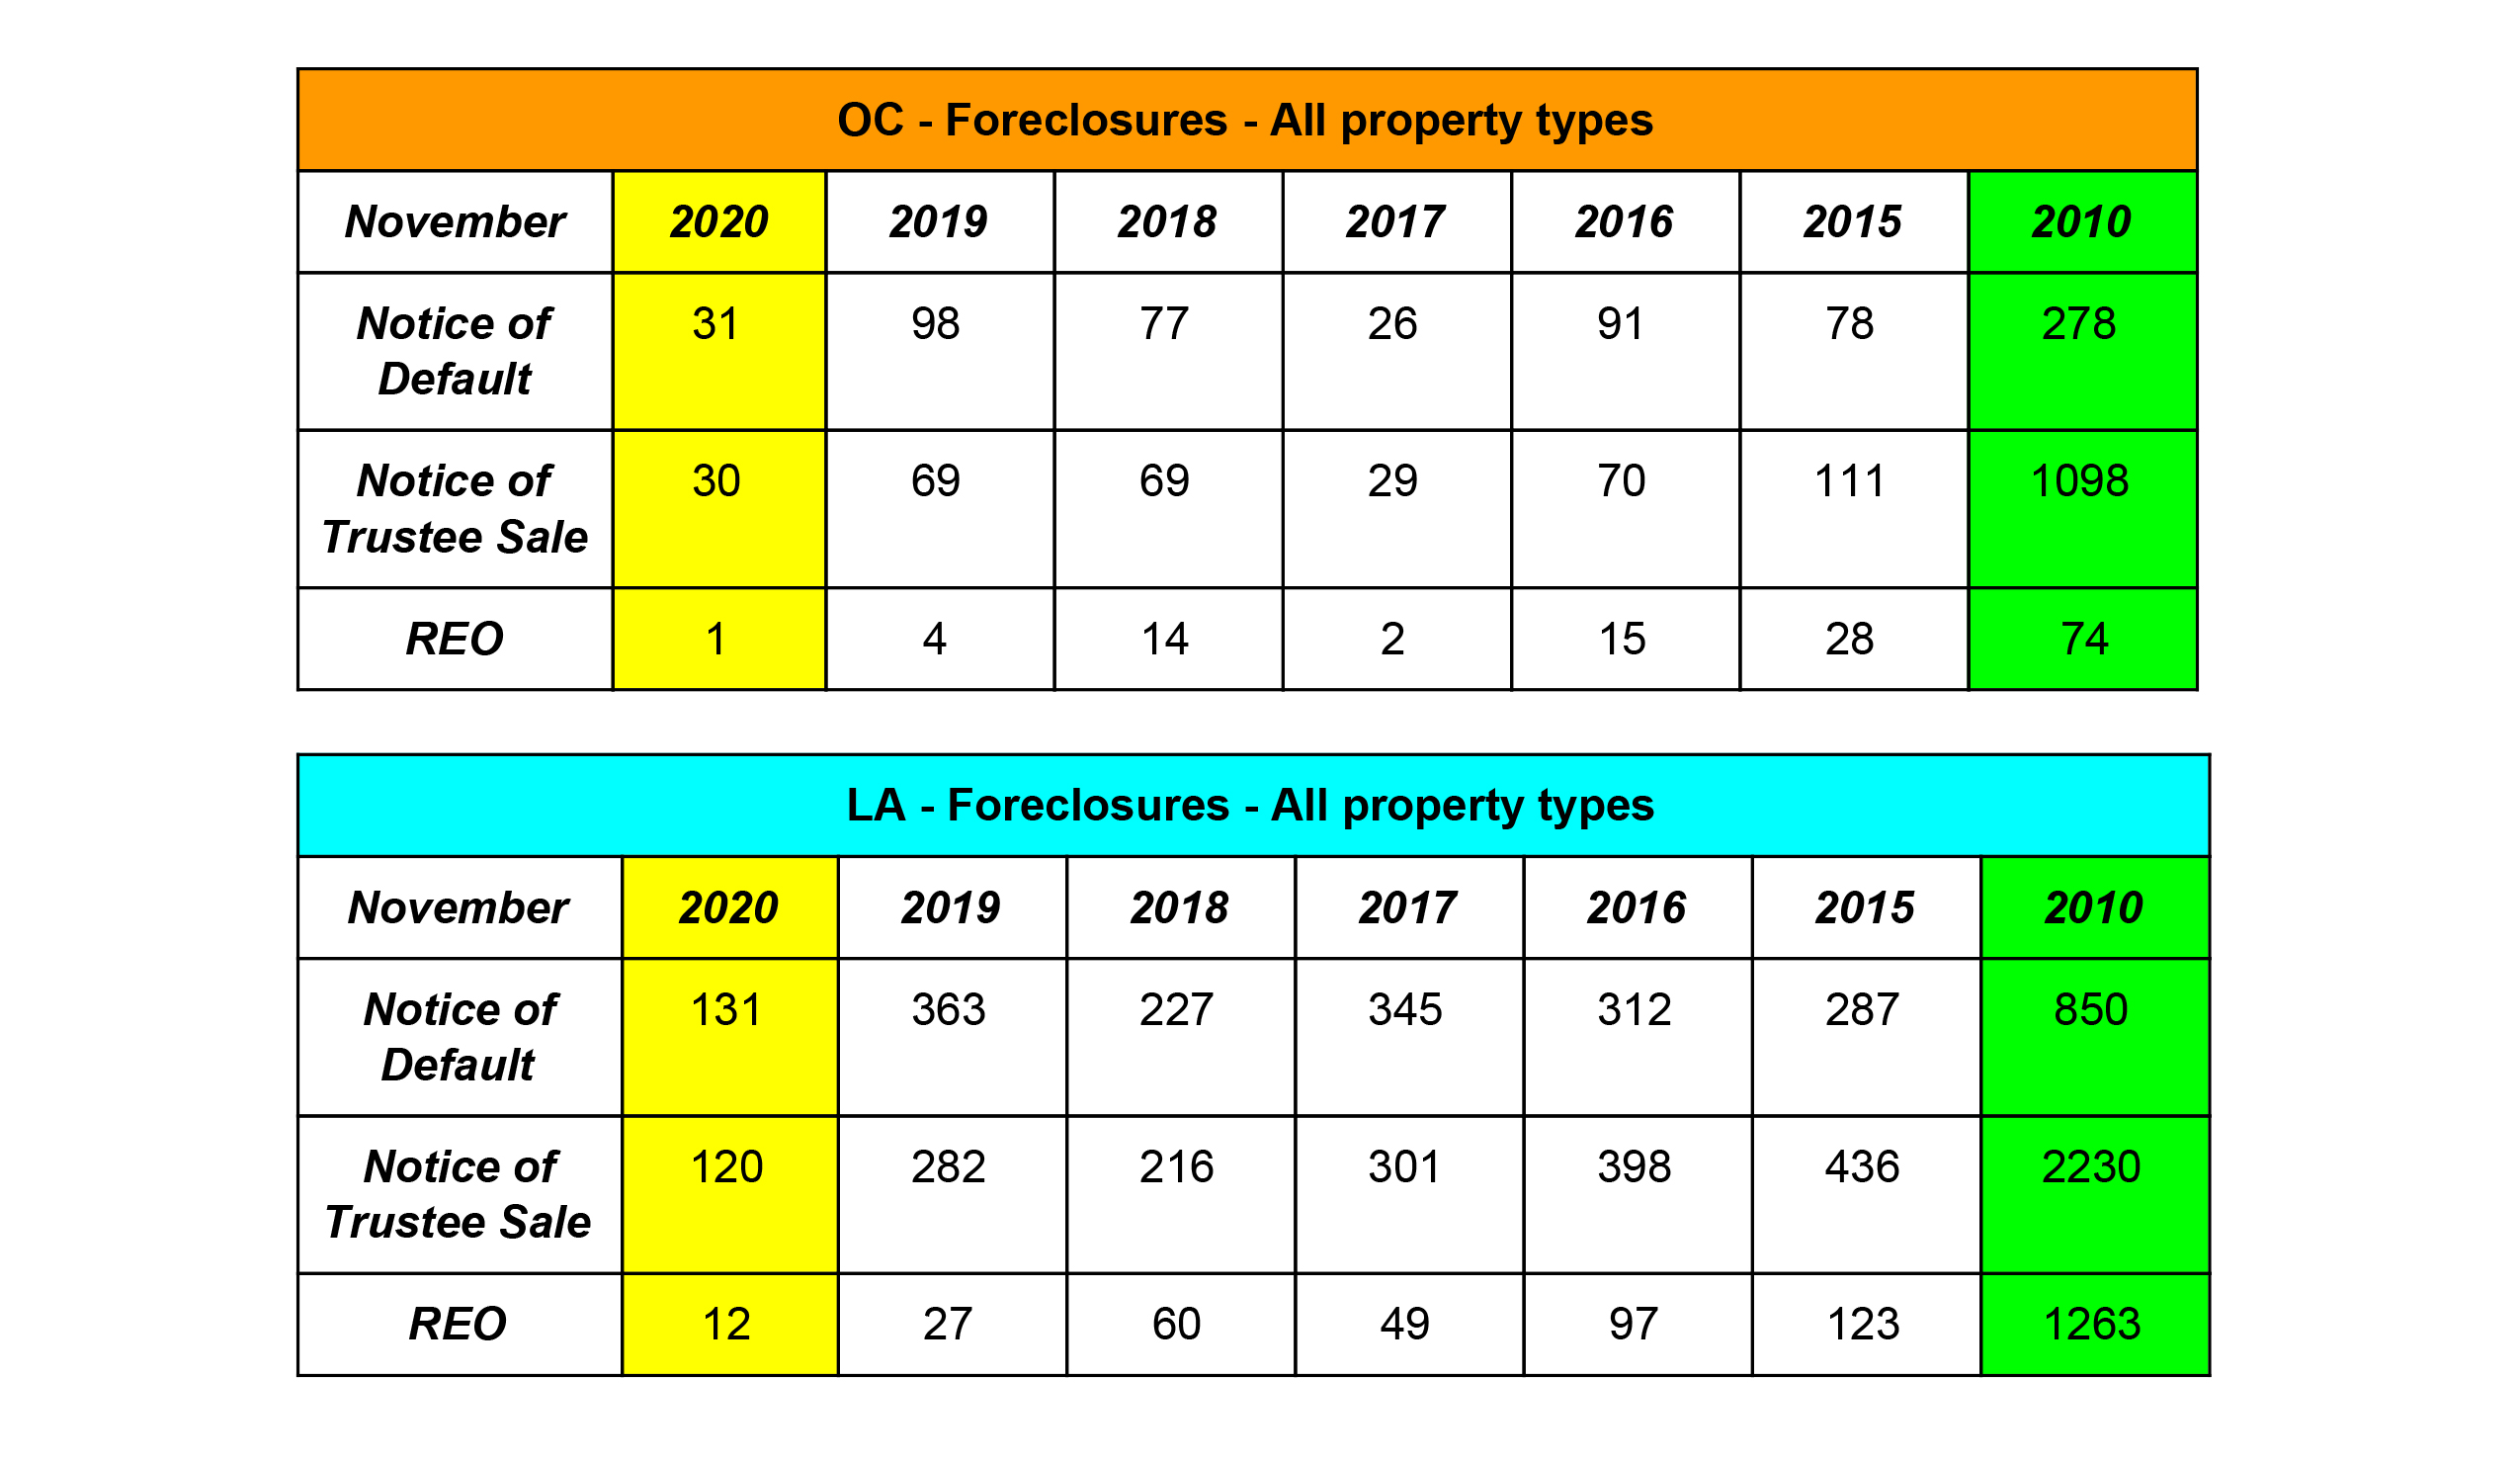 Foreclosures - OC and LA